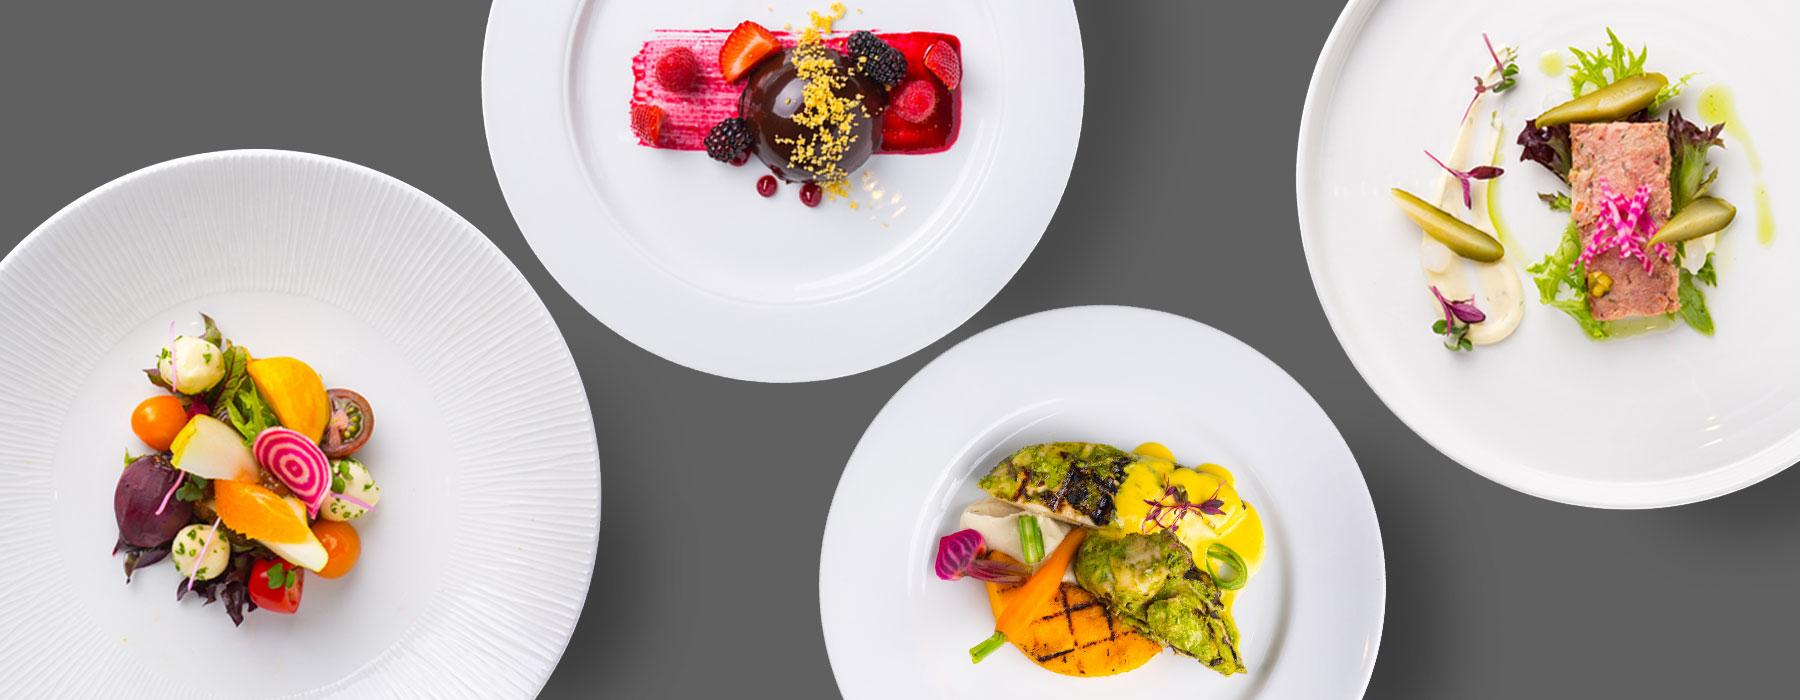 A selection of brightly-coloured meals